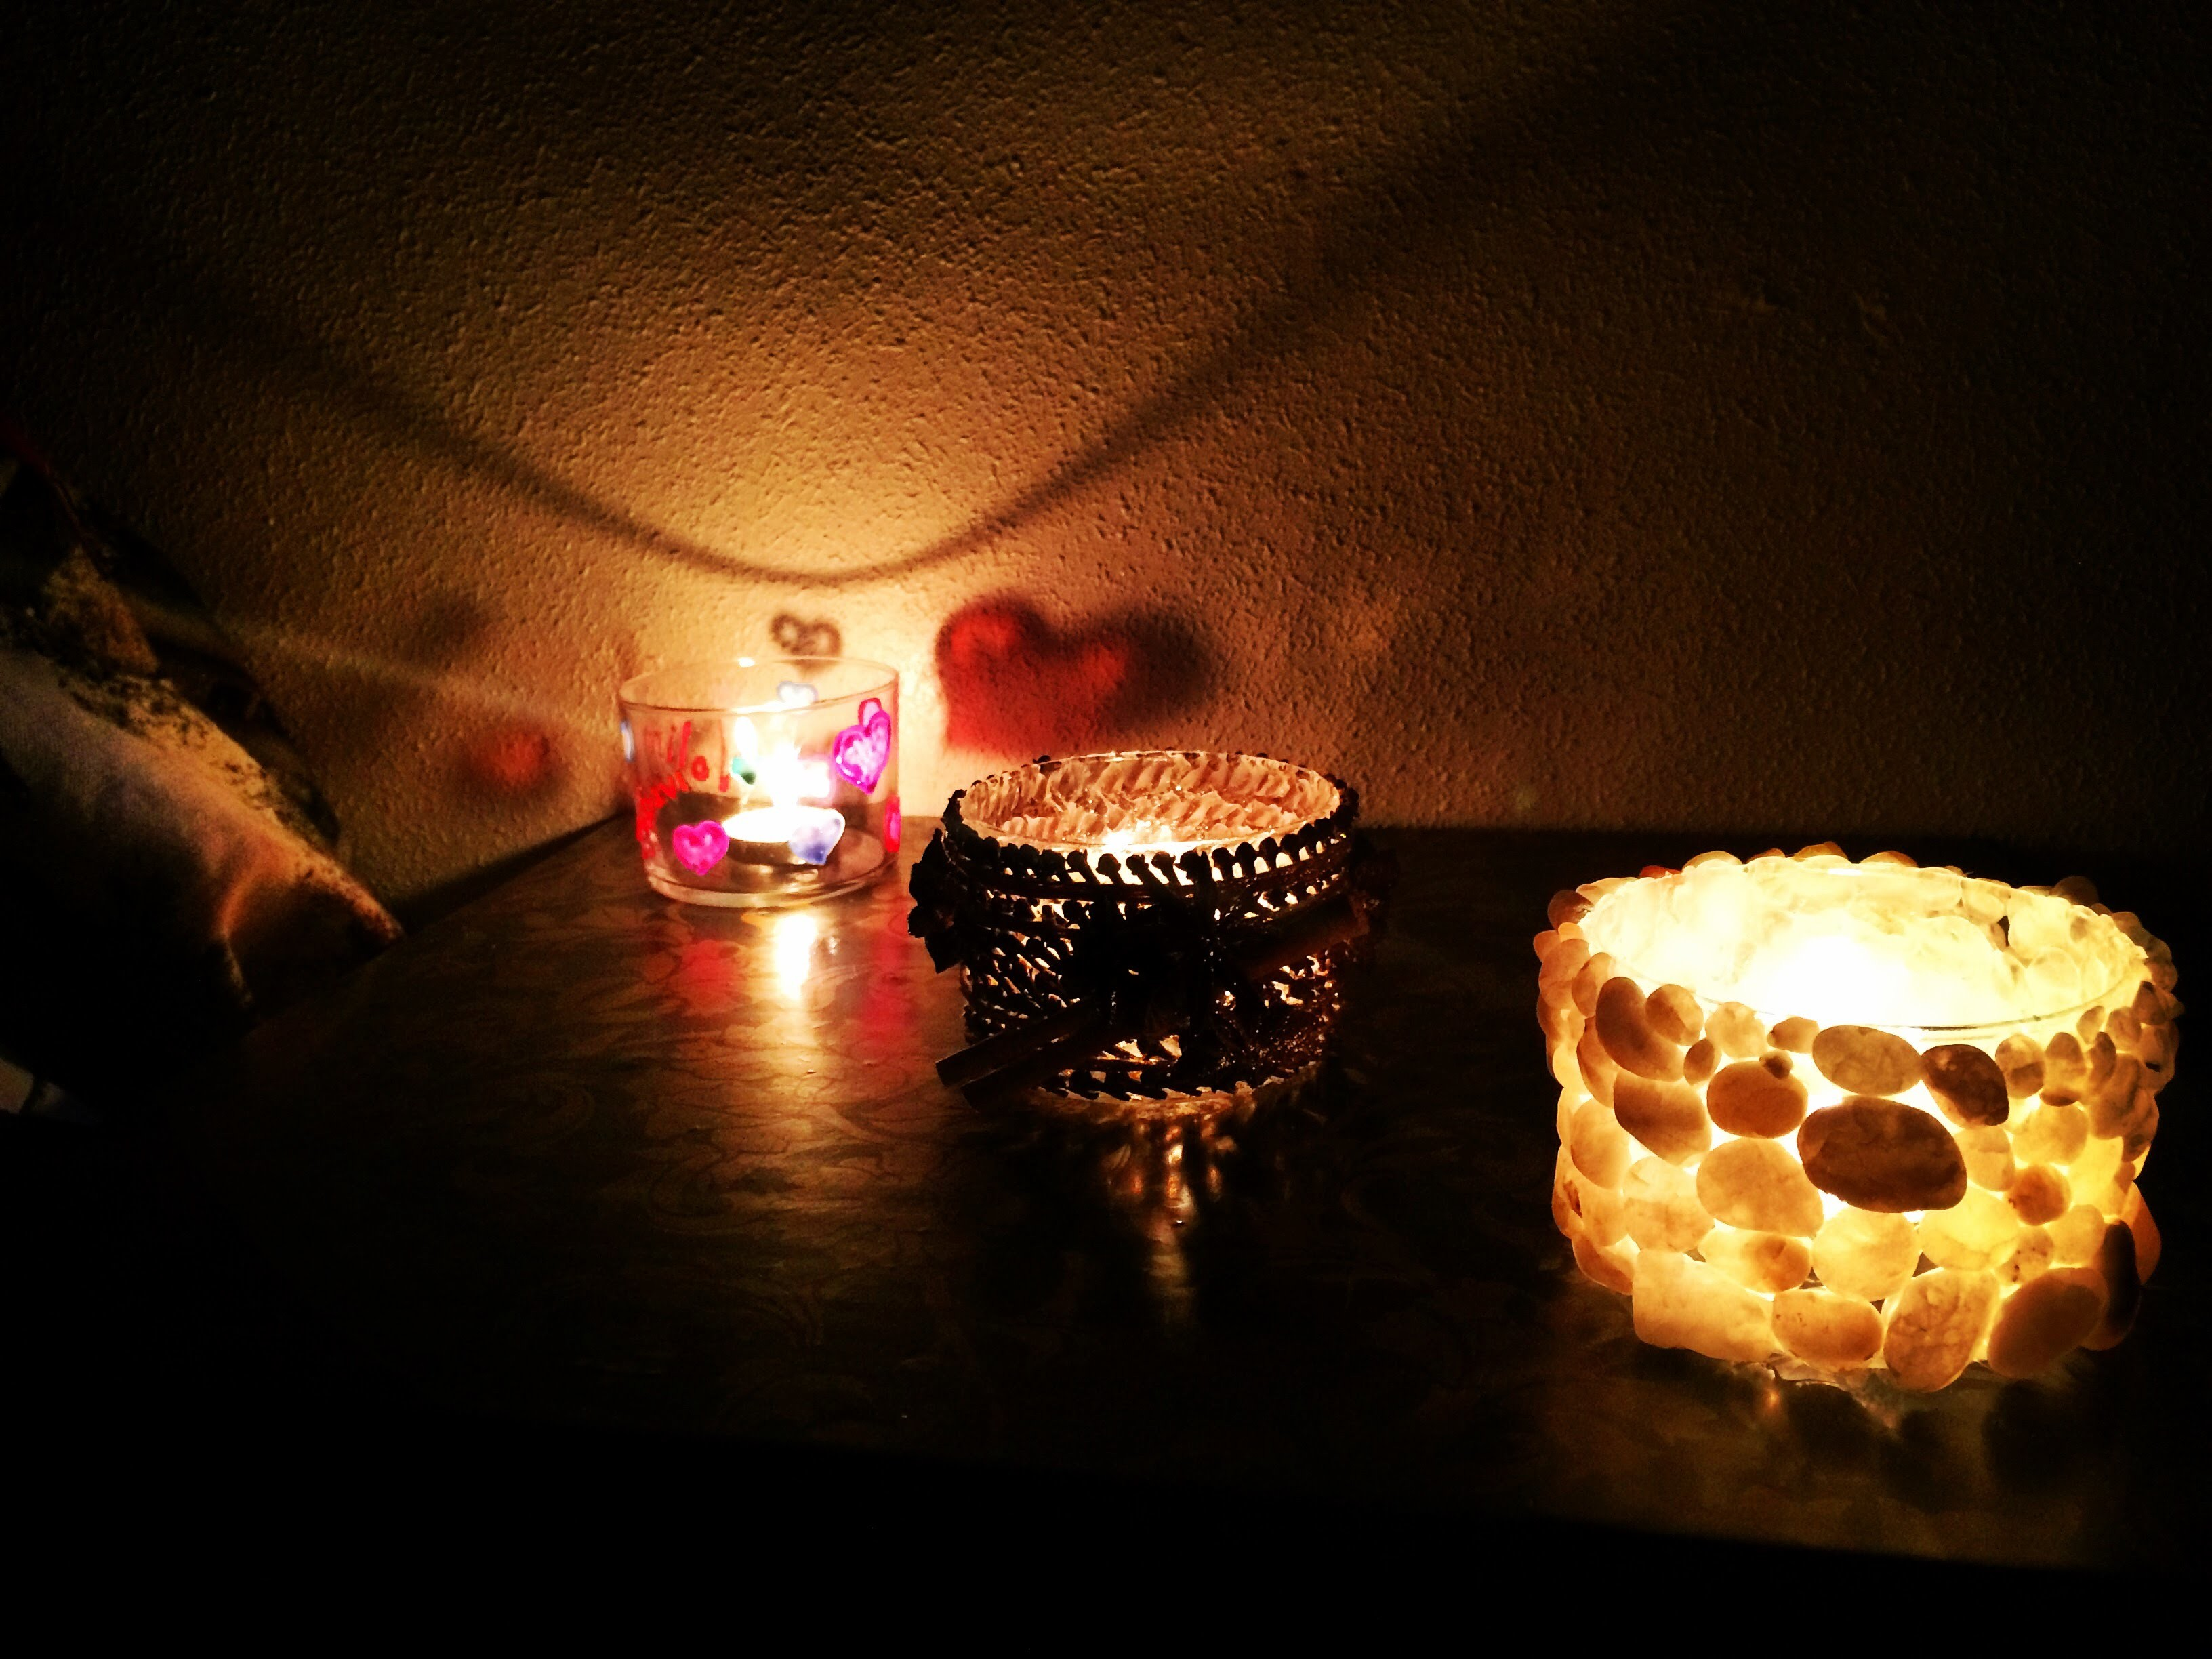 DIY Porta velas fácil  (make candle holders)